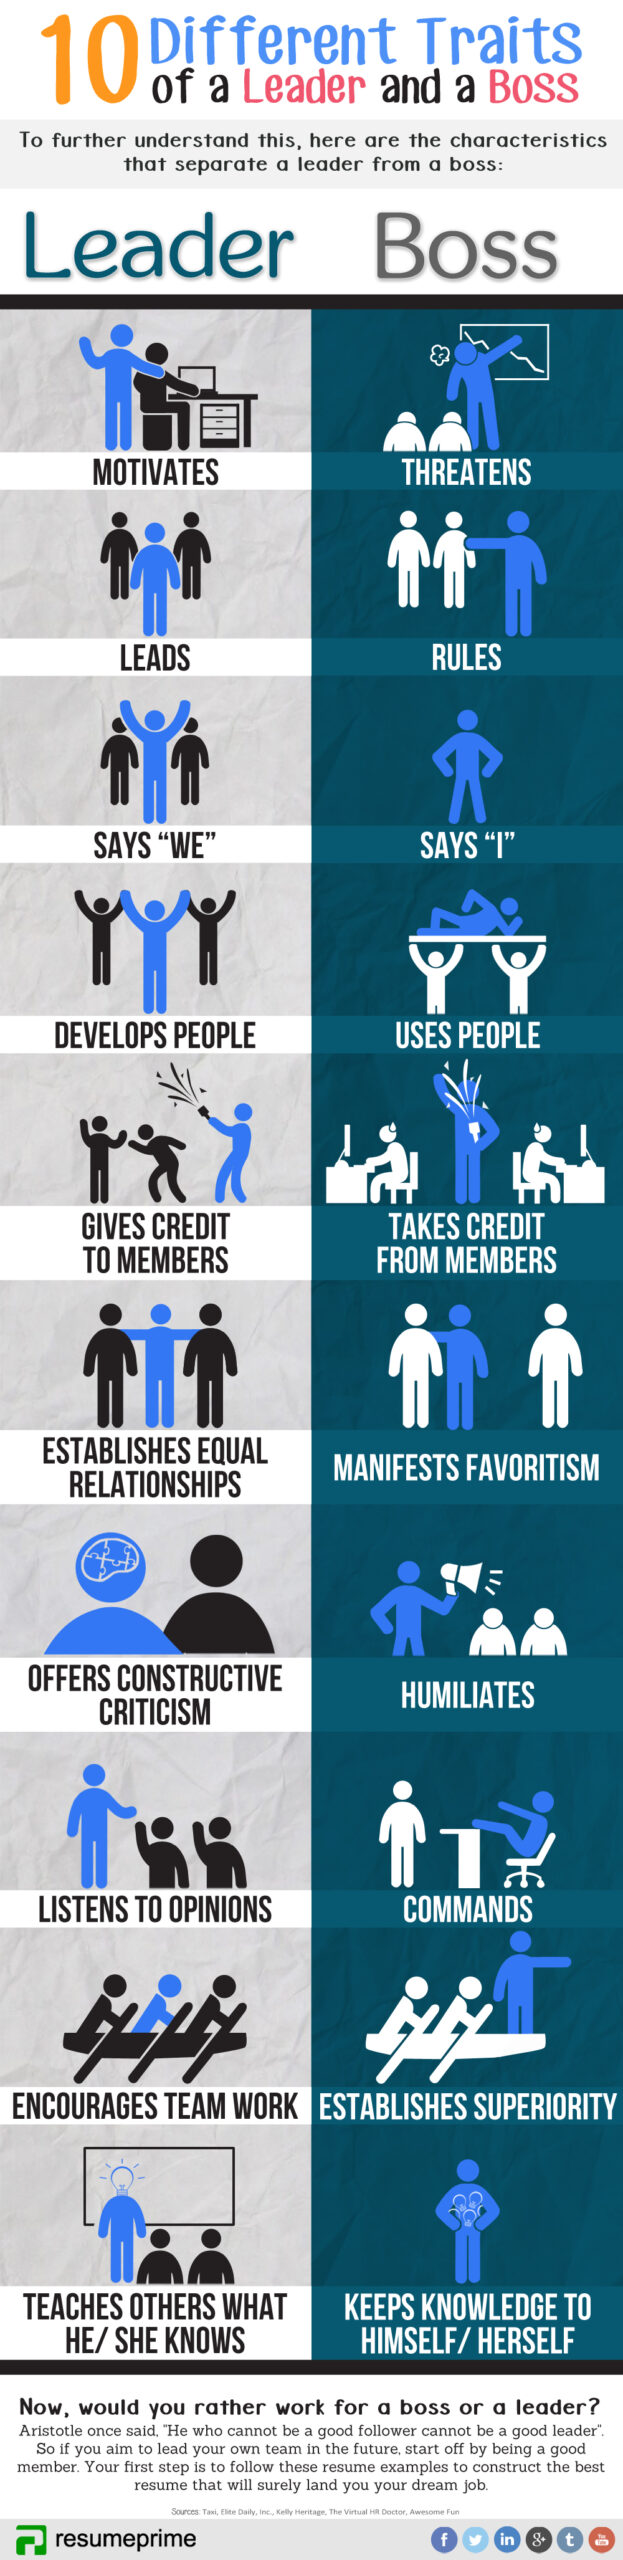 10 Differences Between a Boss and a Leader [Infographic]